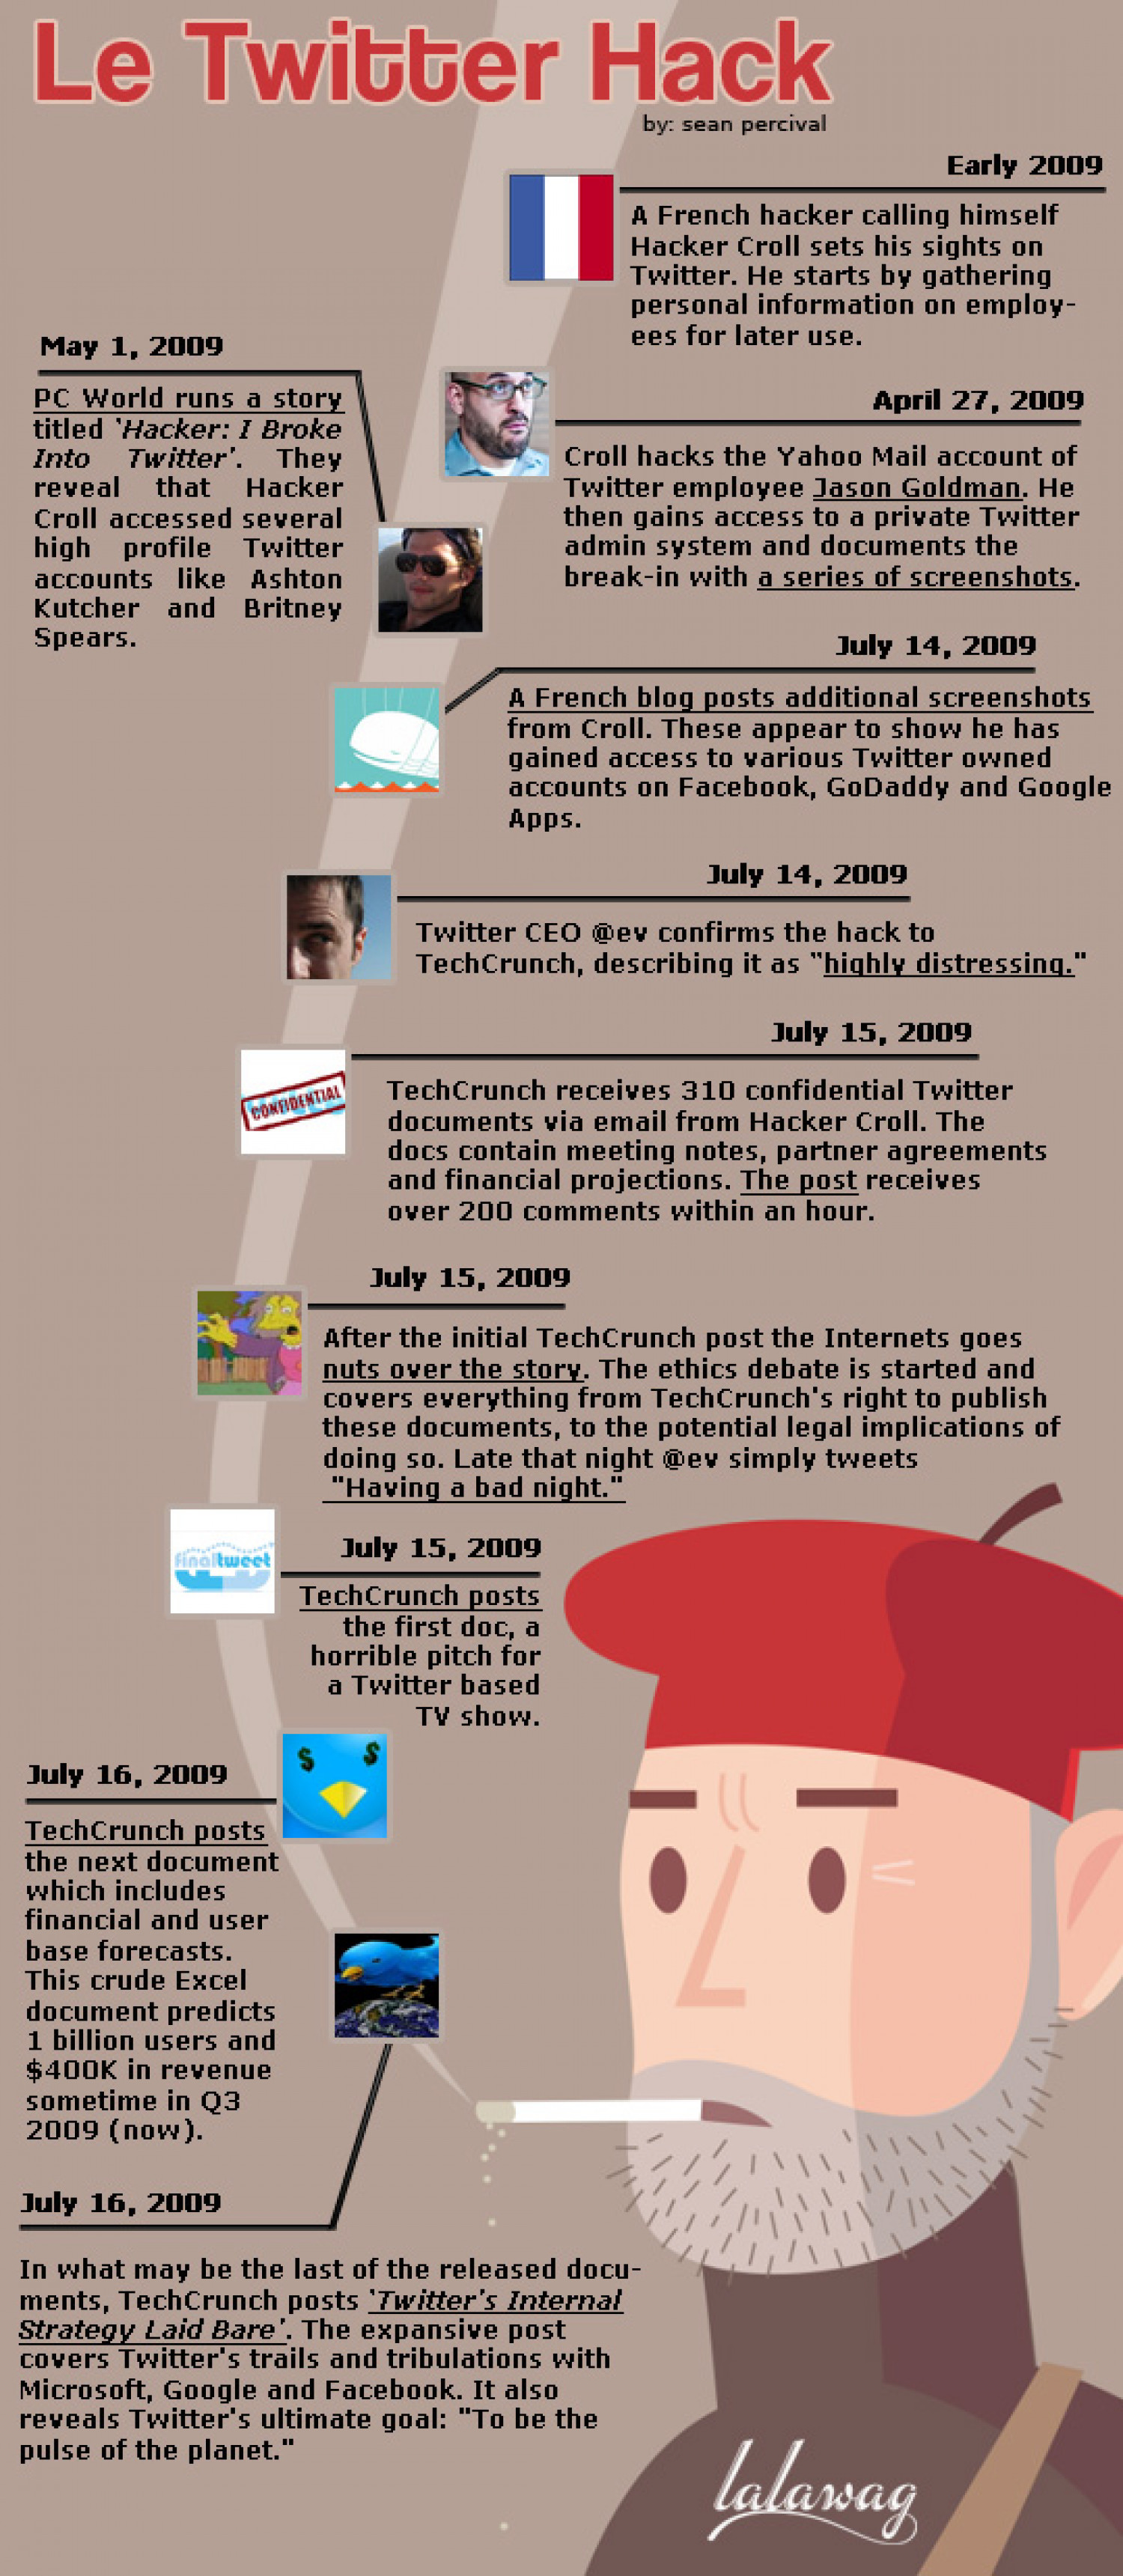 Le Twitter Hack Infographic